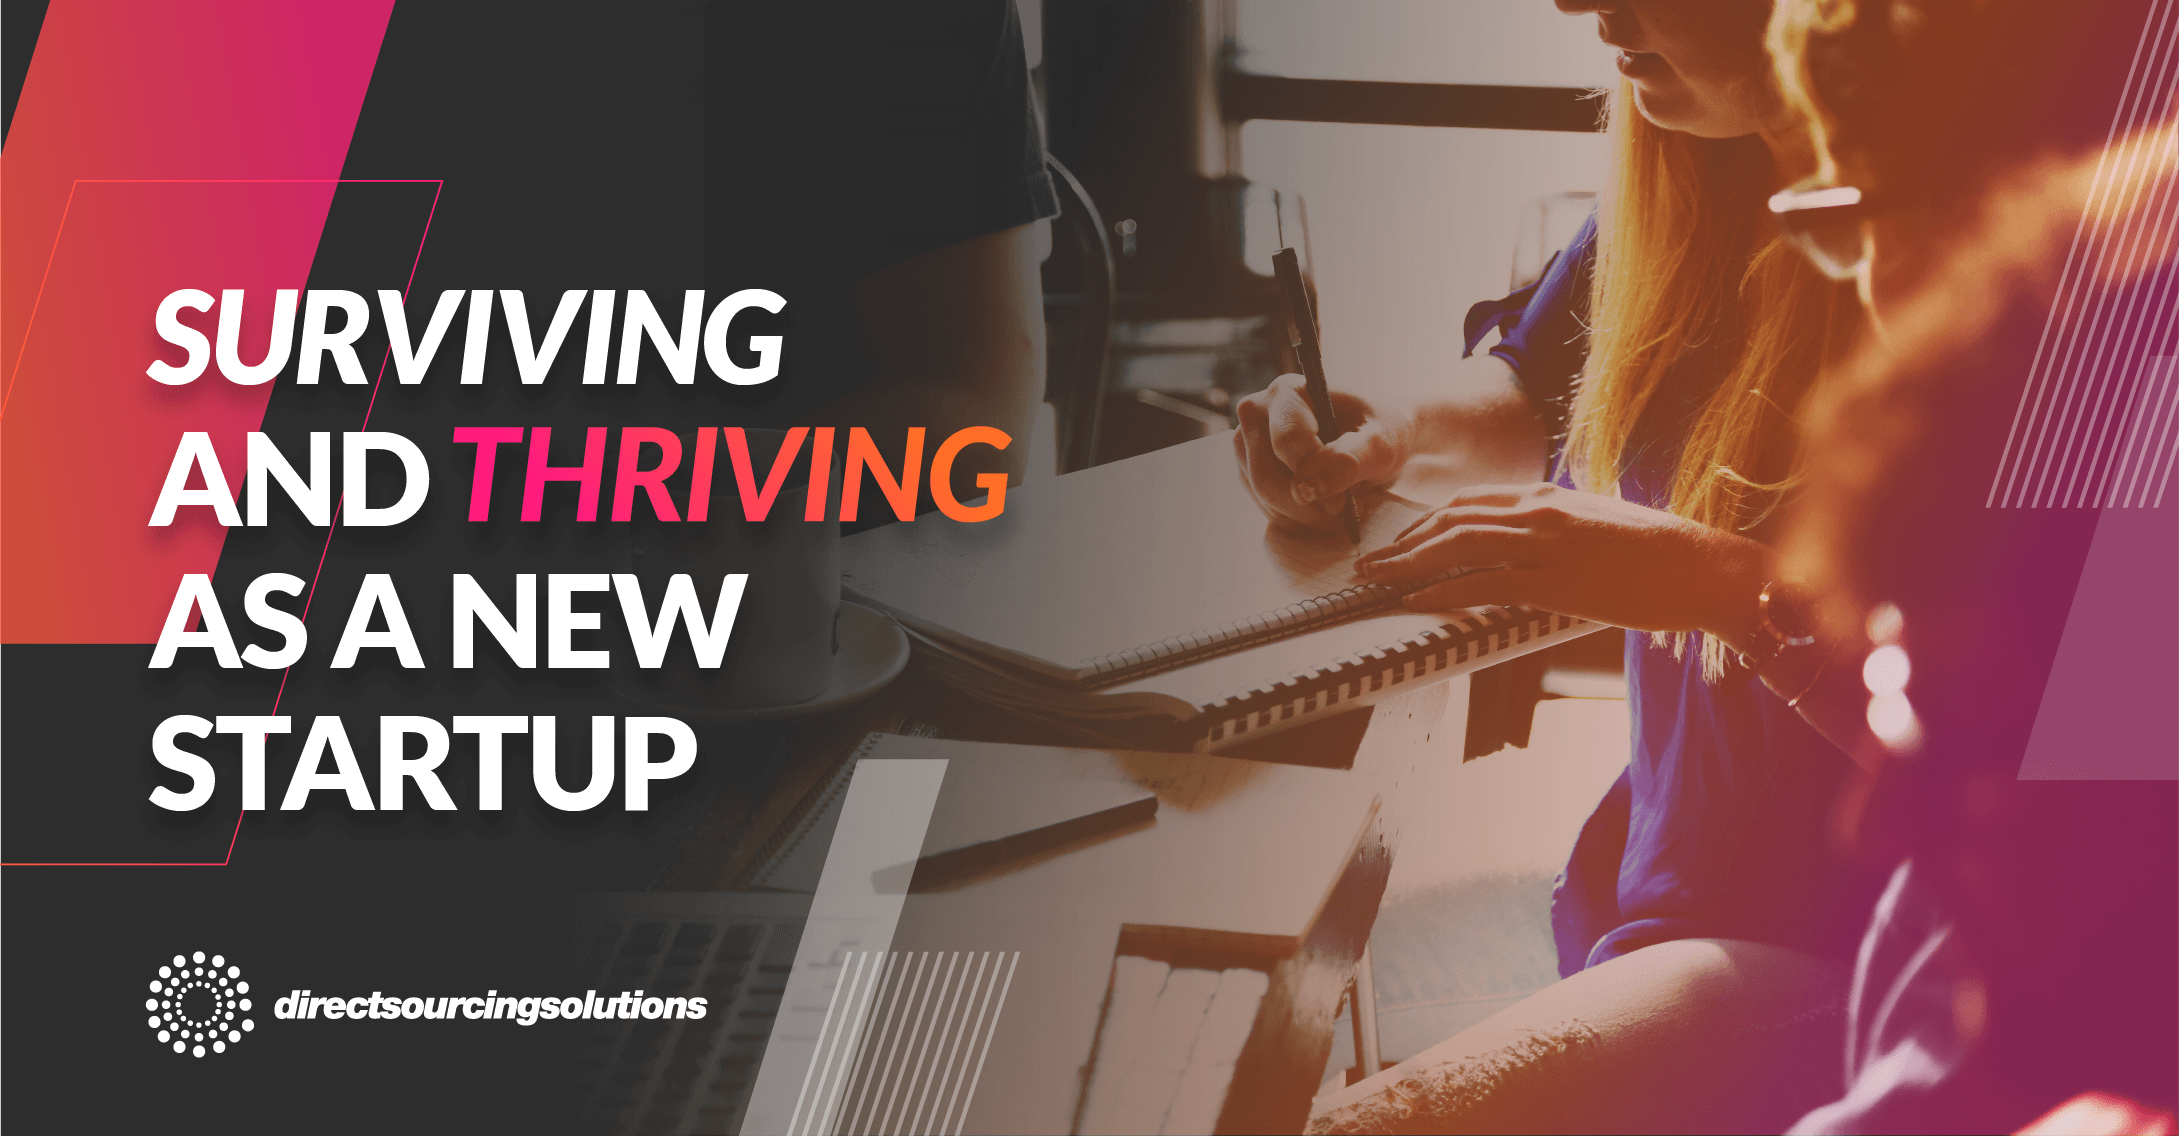 Surviving and thriving as a new startup